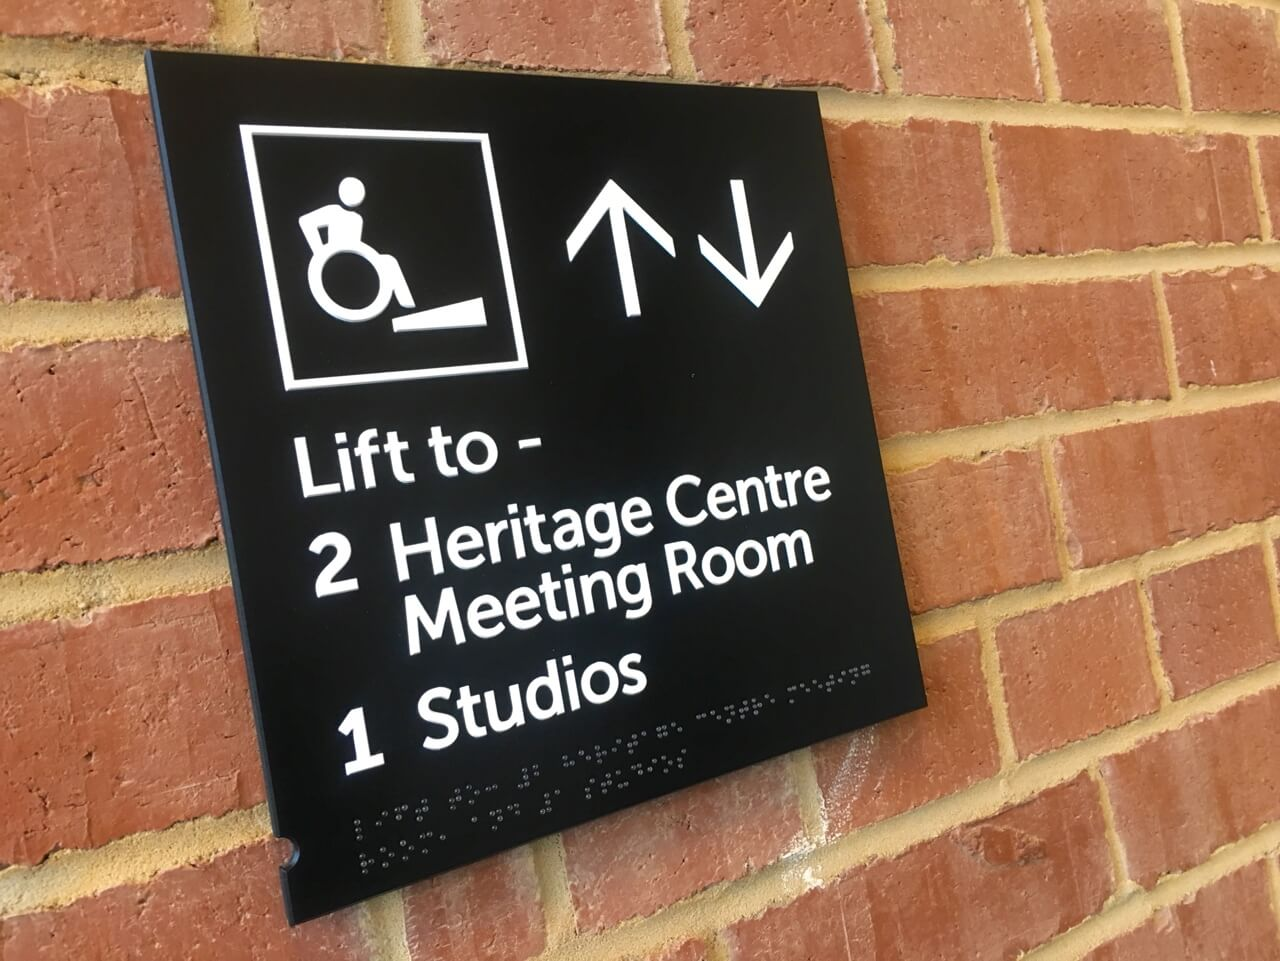 A black wayfinding site showing ramp wheelchair access to locations in the building